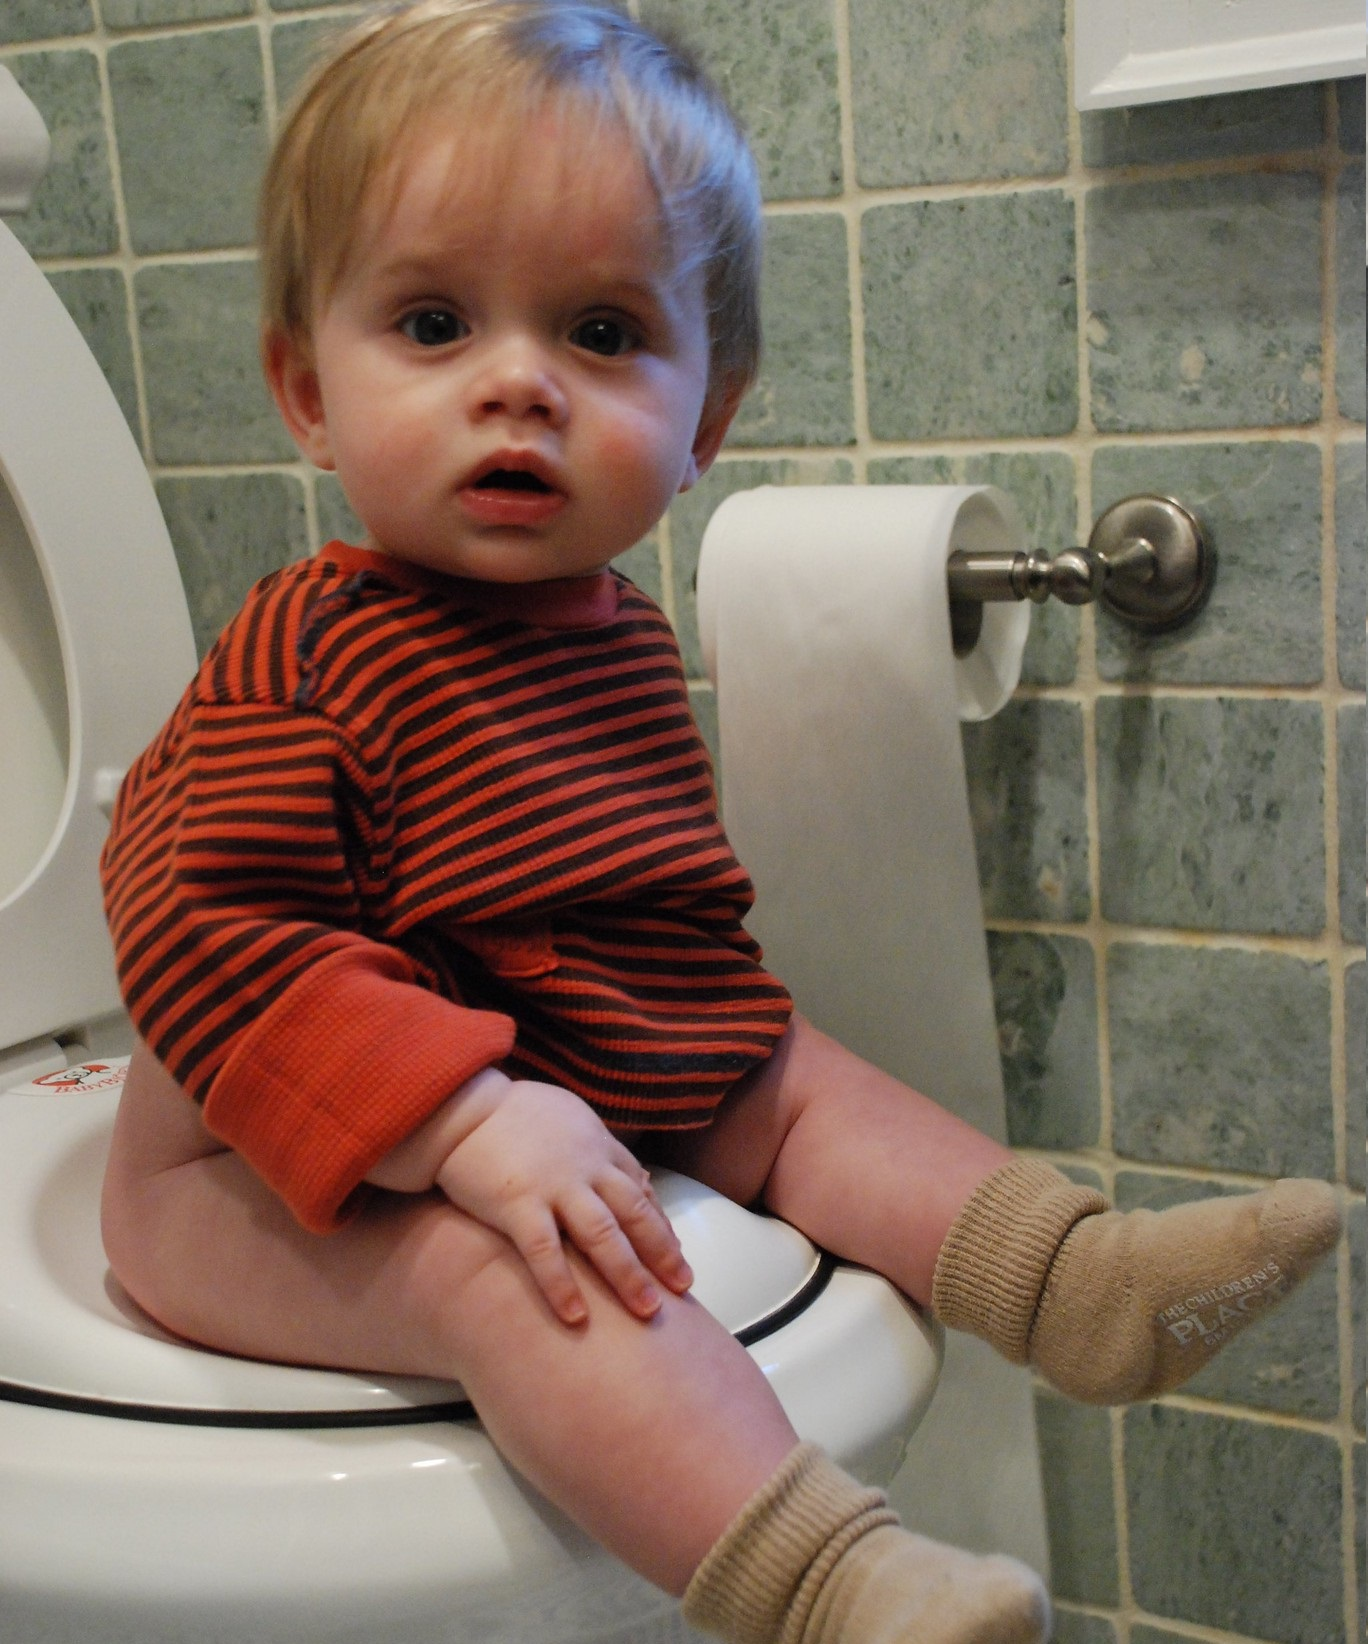 baby constipation